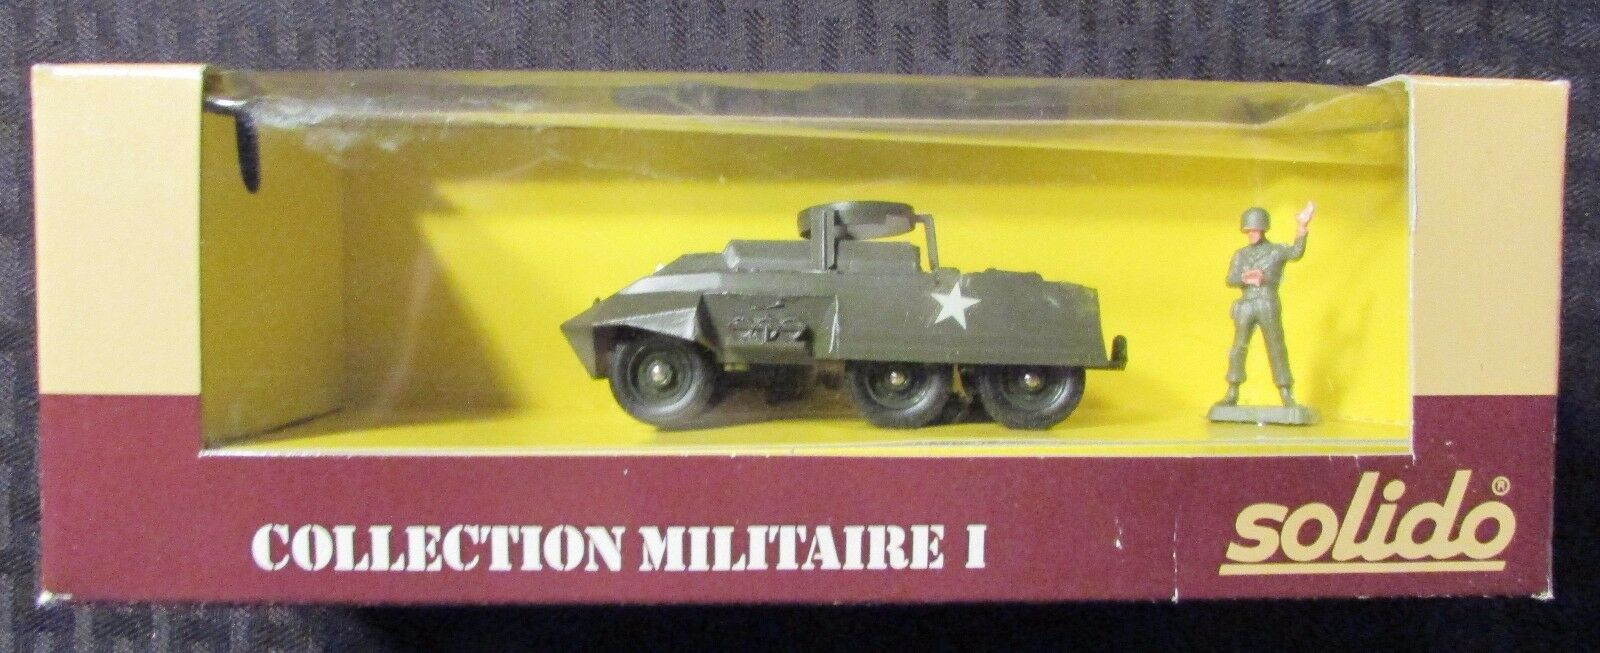 SOLIDO Collection Militaire I M 20 M20 MIB C-7 1 43 French